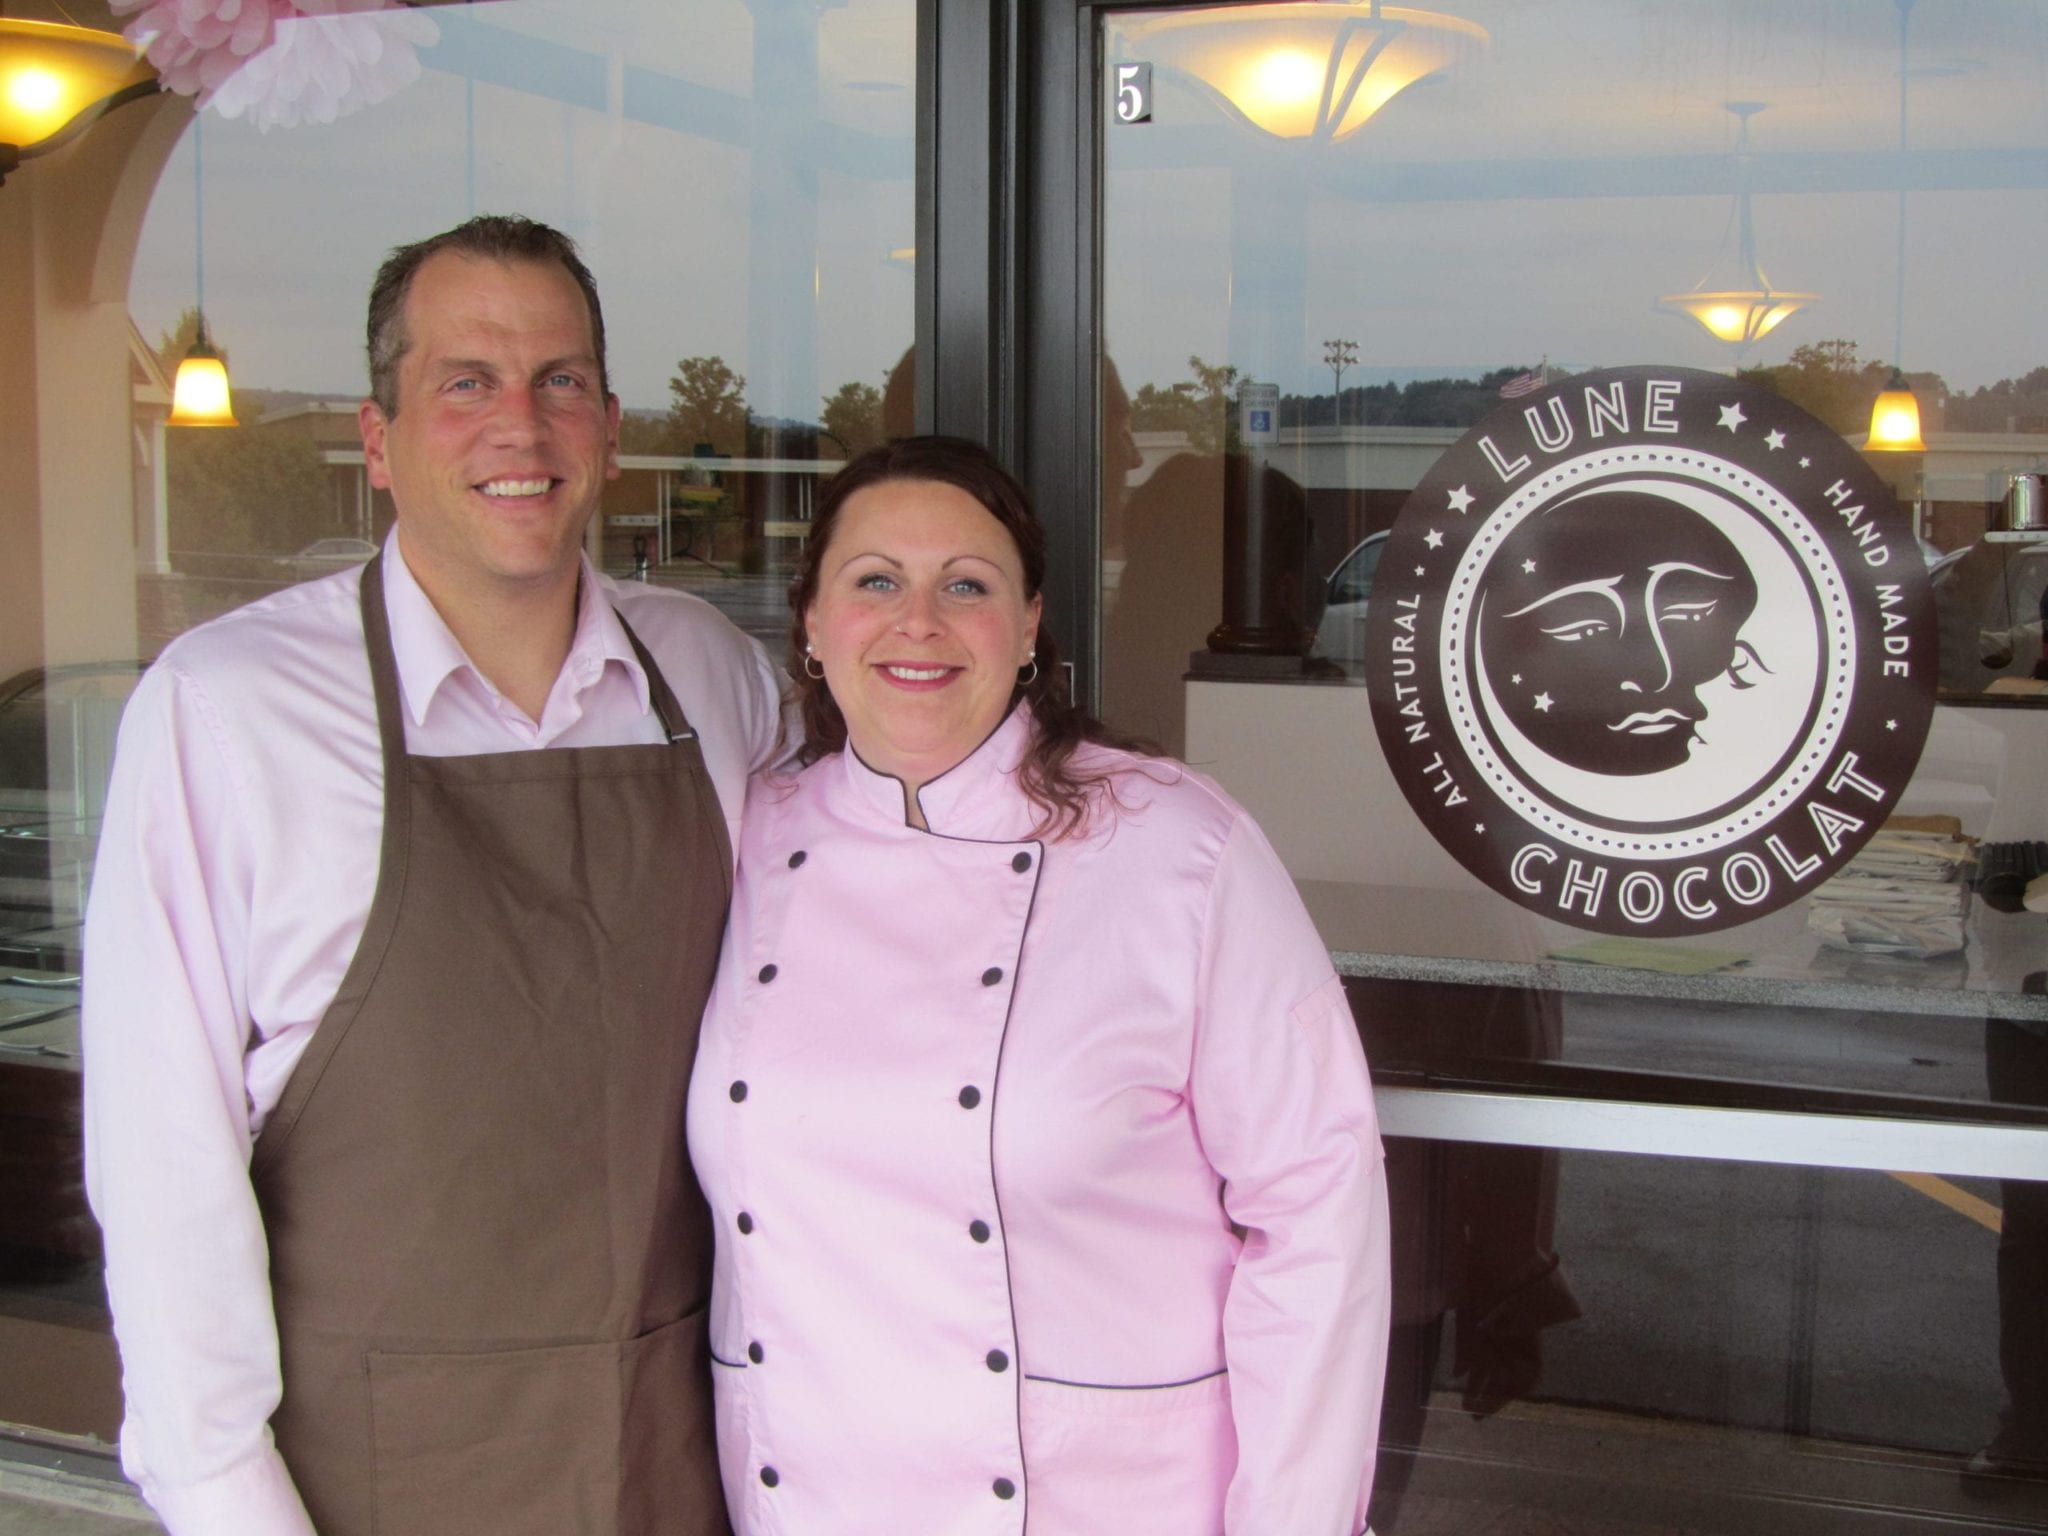 Camillus couple to open 'Lune Chocolat' in Manlius